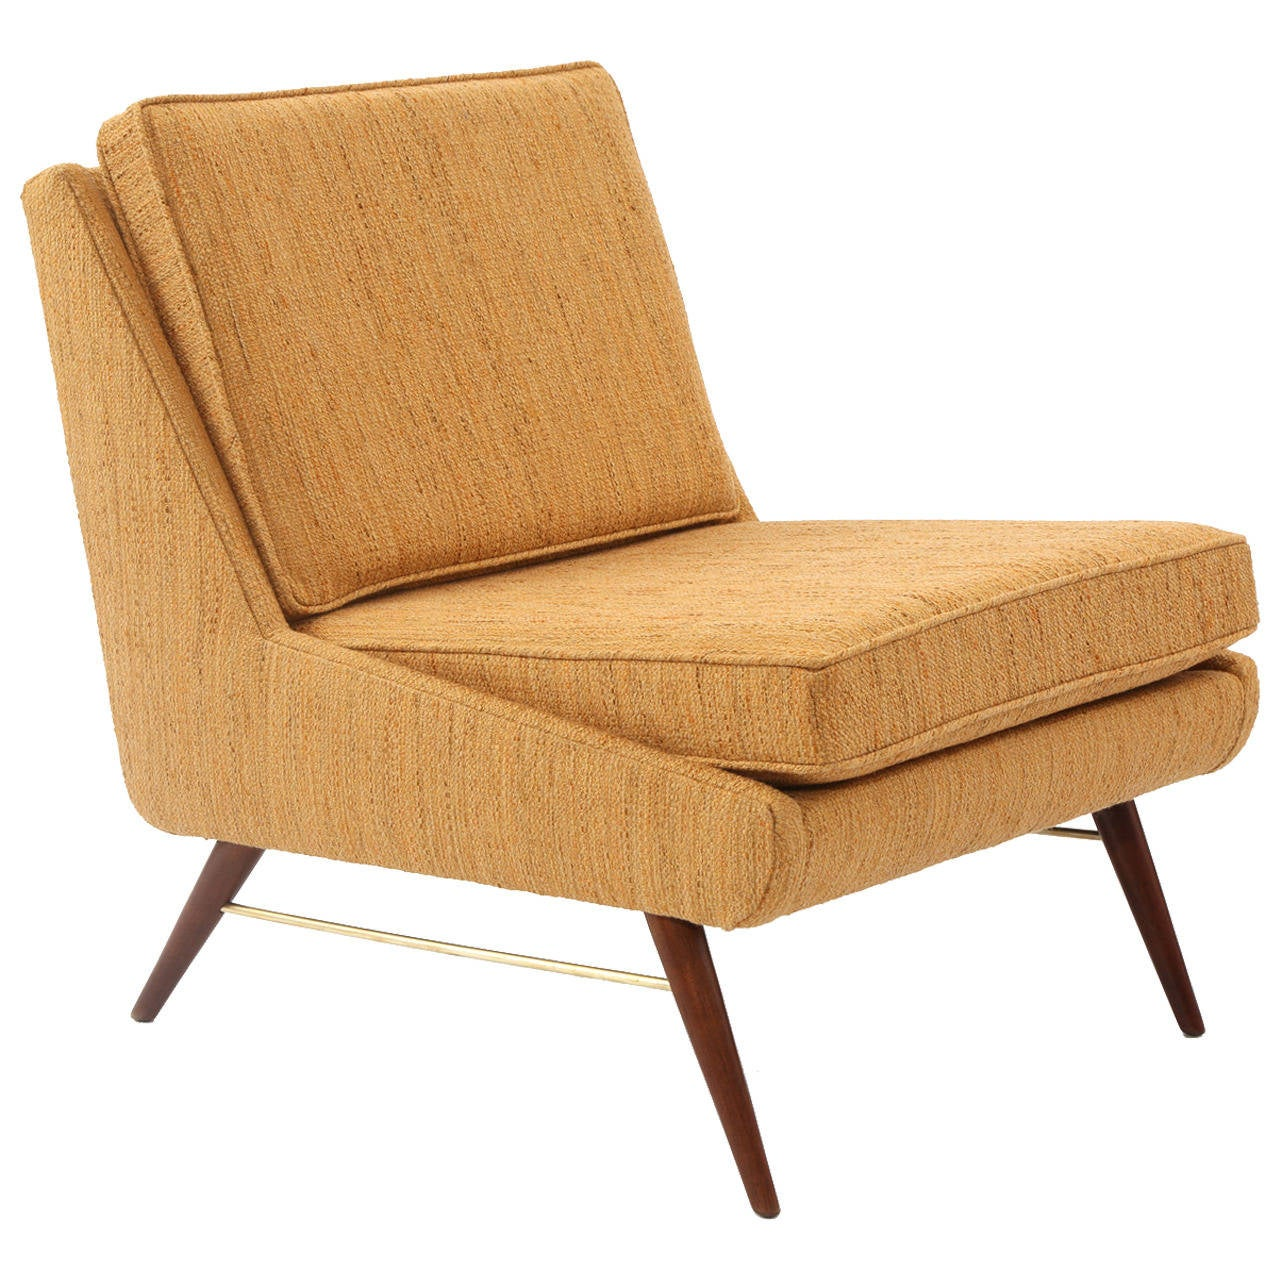 Paul McCobb Walnut Brass and Upholstered Lounge Chair at